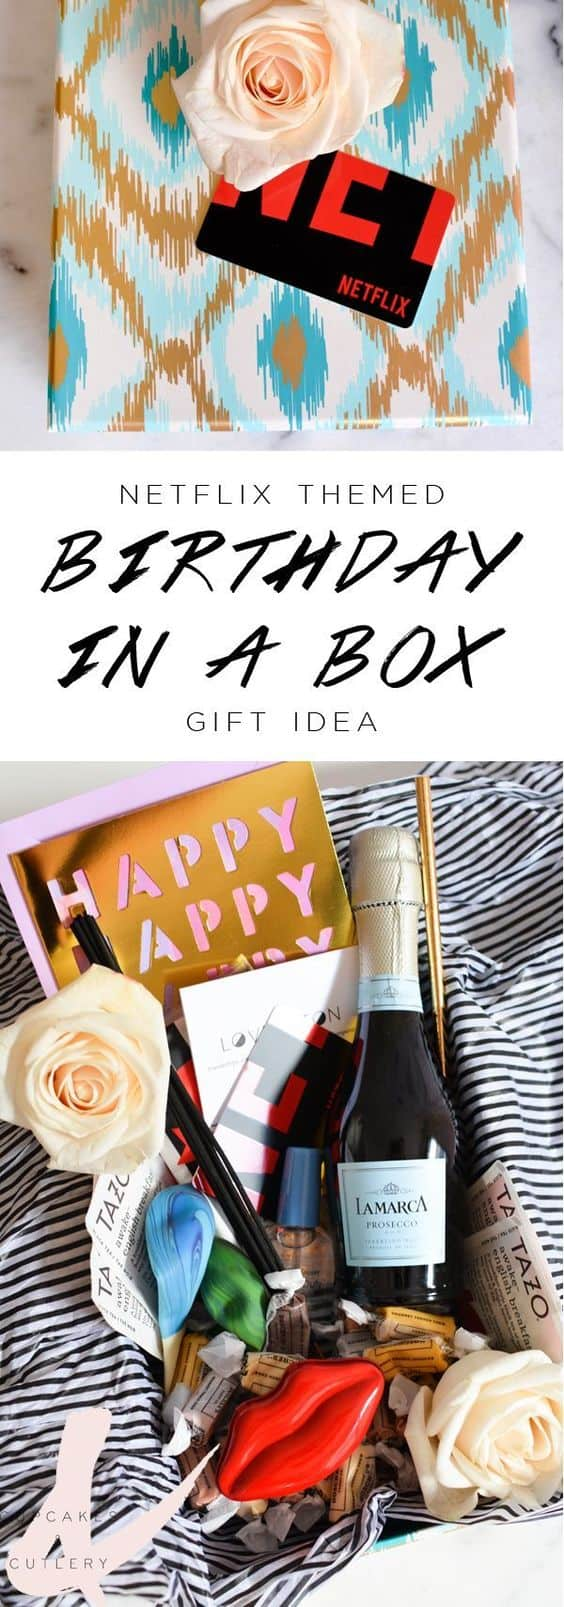 Netflix Gift Subscription Birthday In A Box Cupcakes And Cutlery